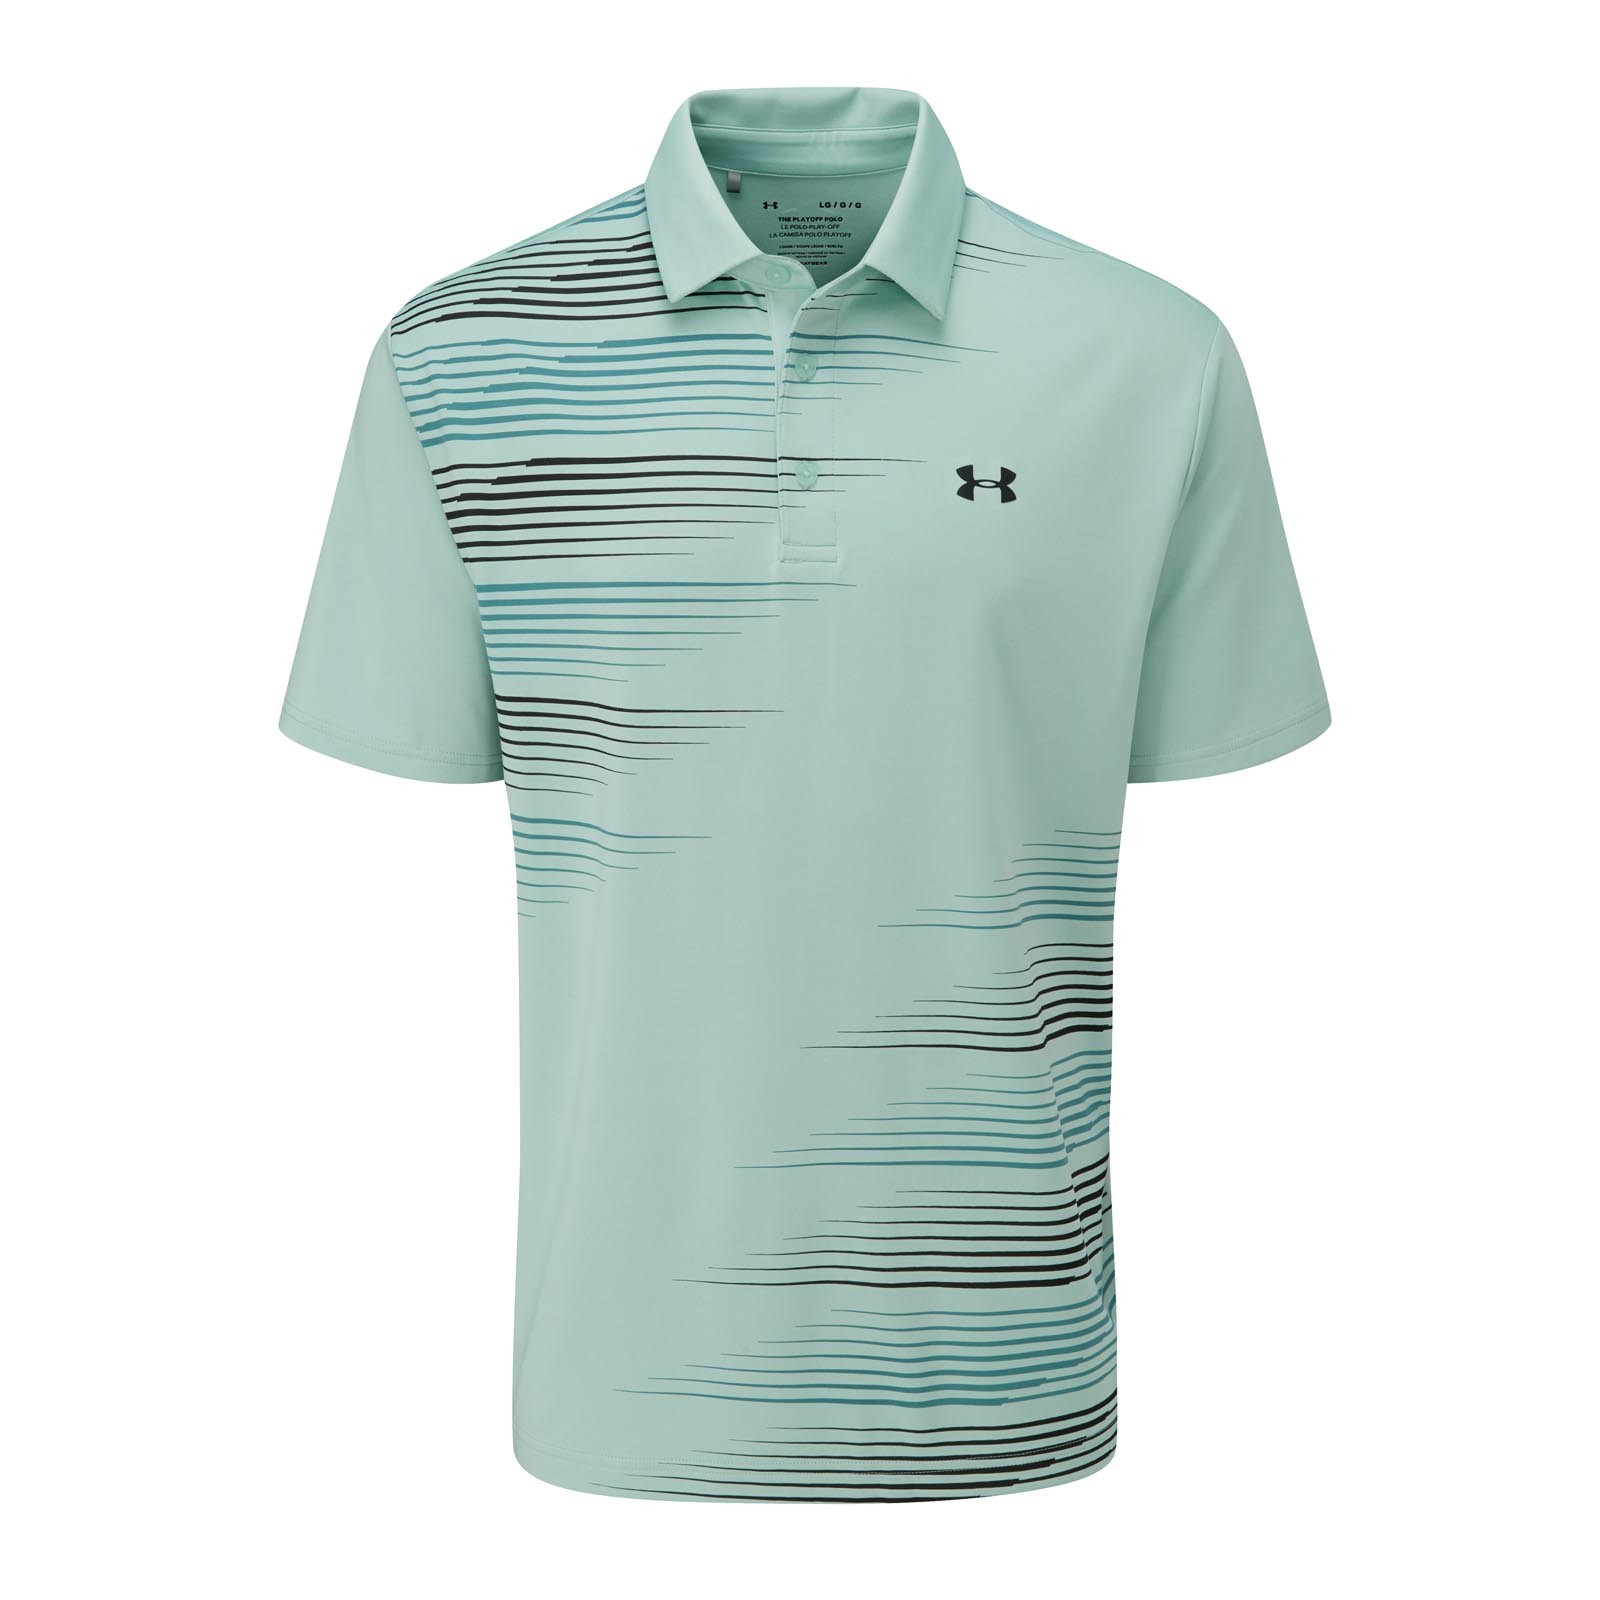 Under Armour Playoff Polo 2.0 - Graphic Solid